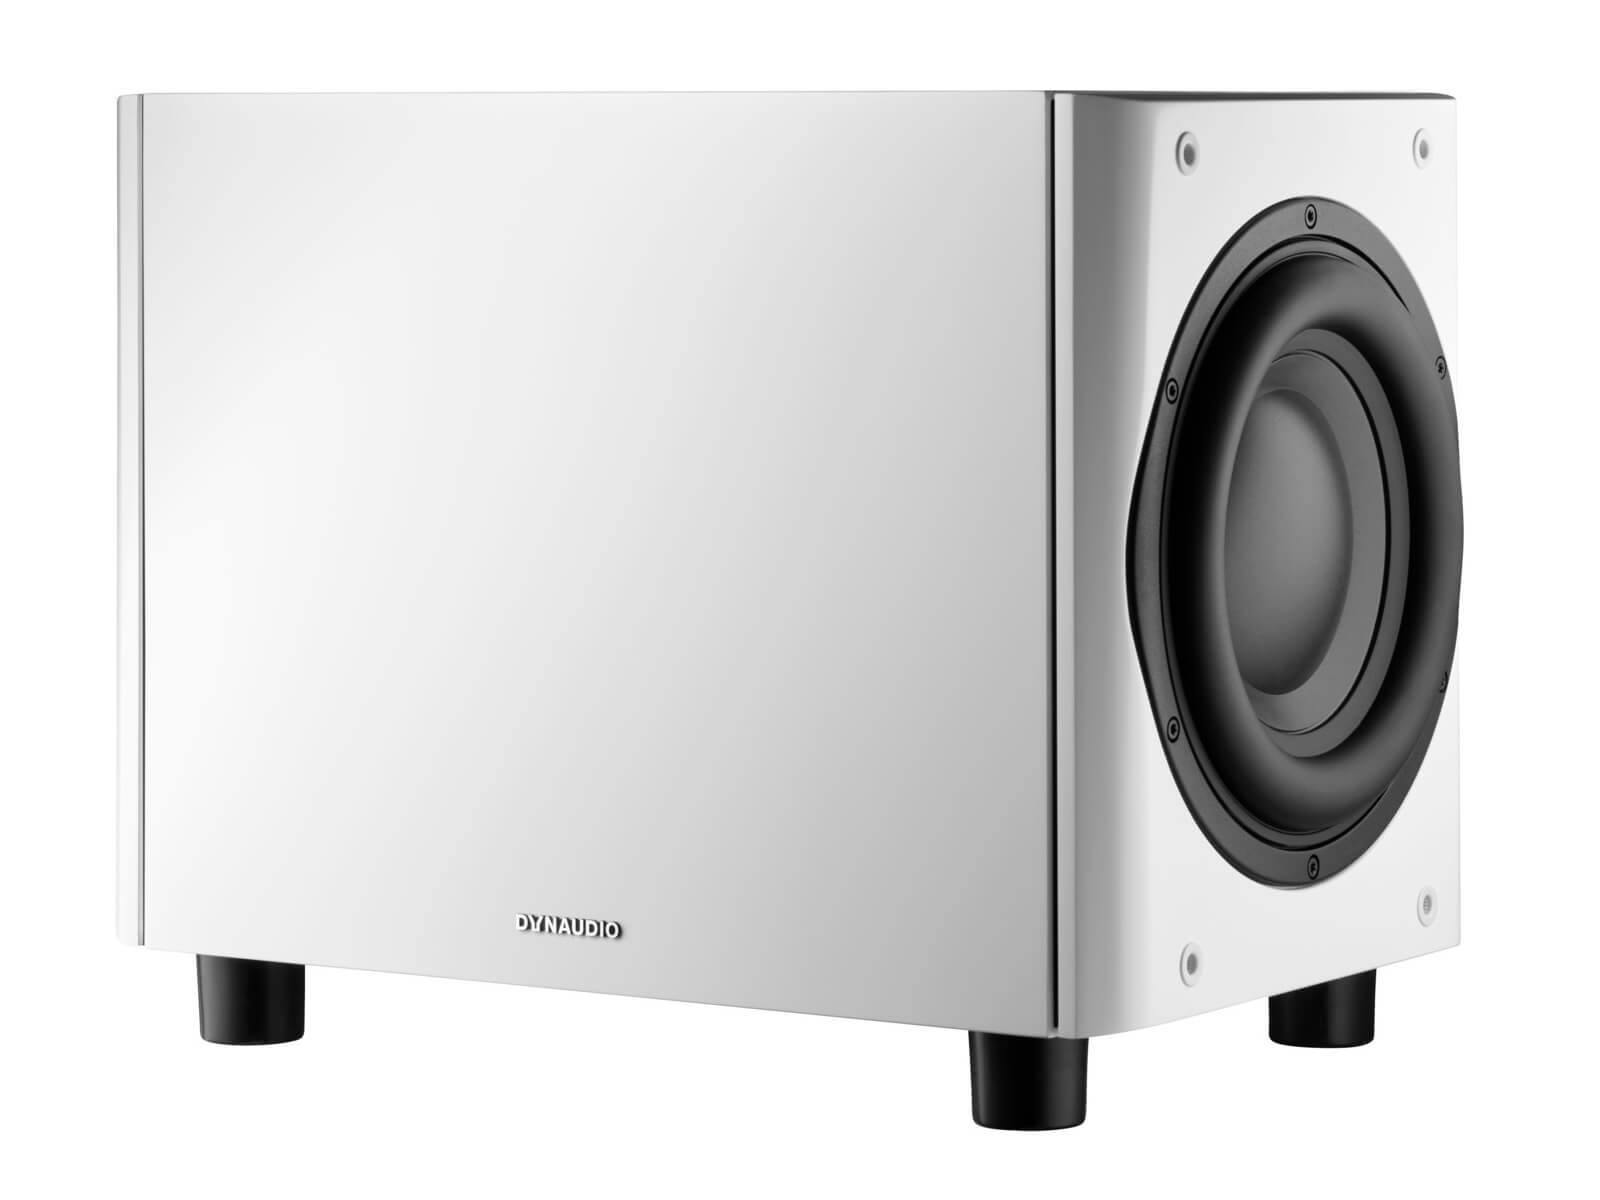 Dynaudio Sub 6 - Home Audio Subwoofer - White